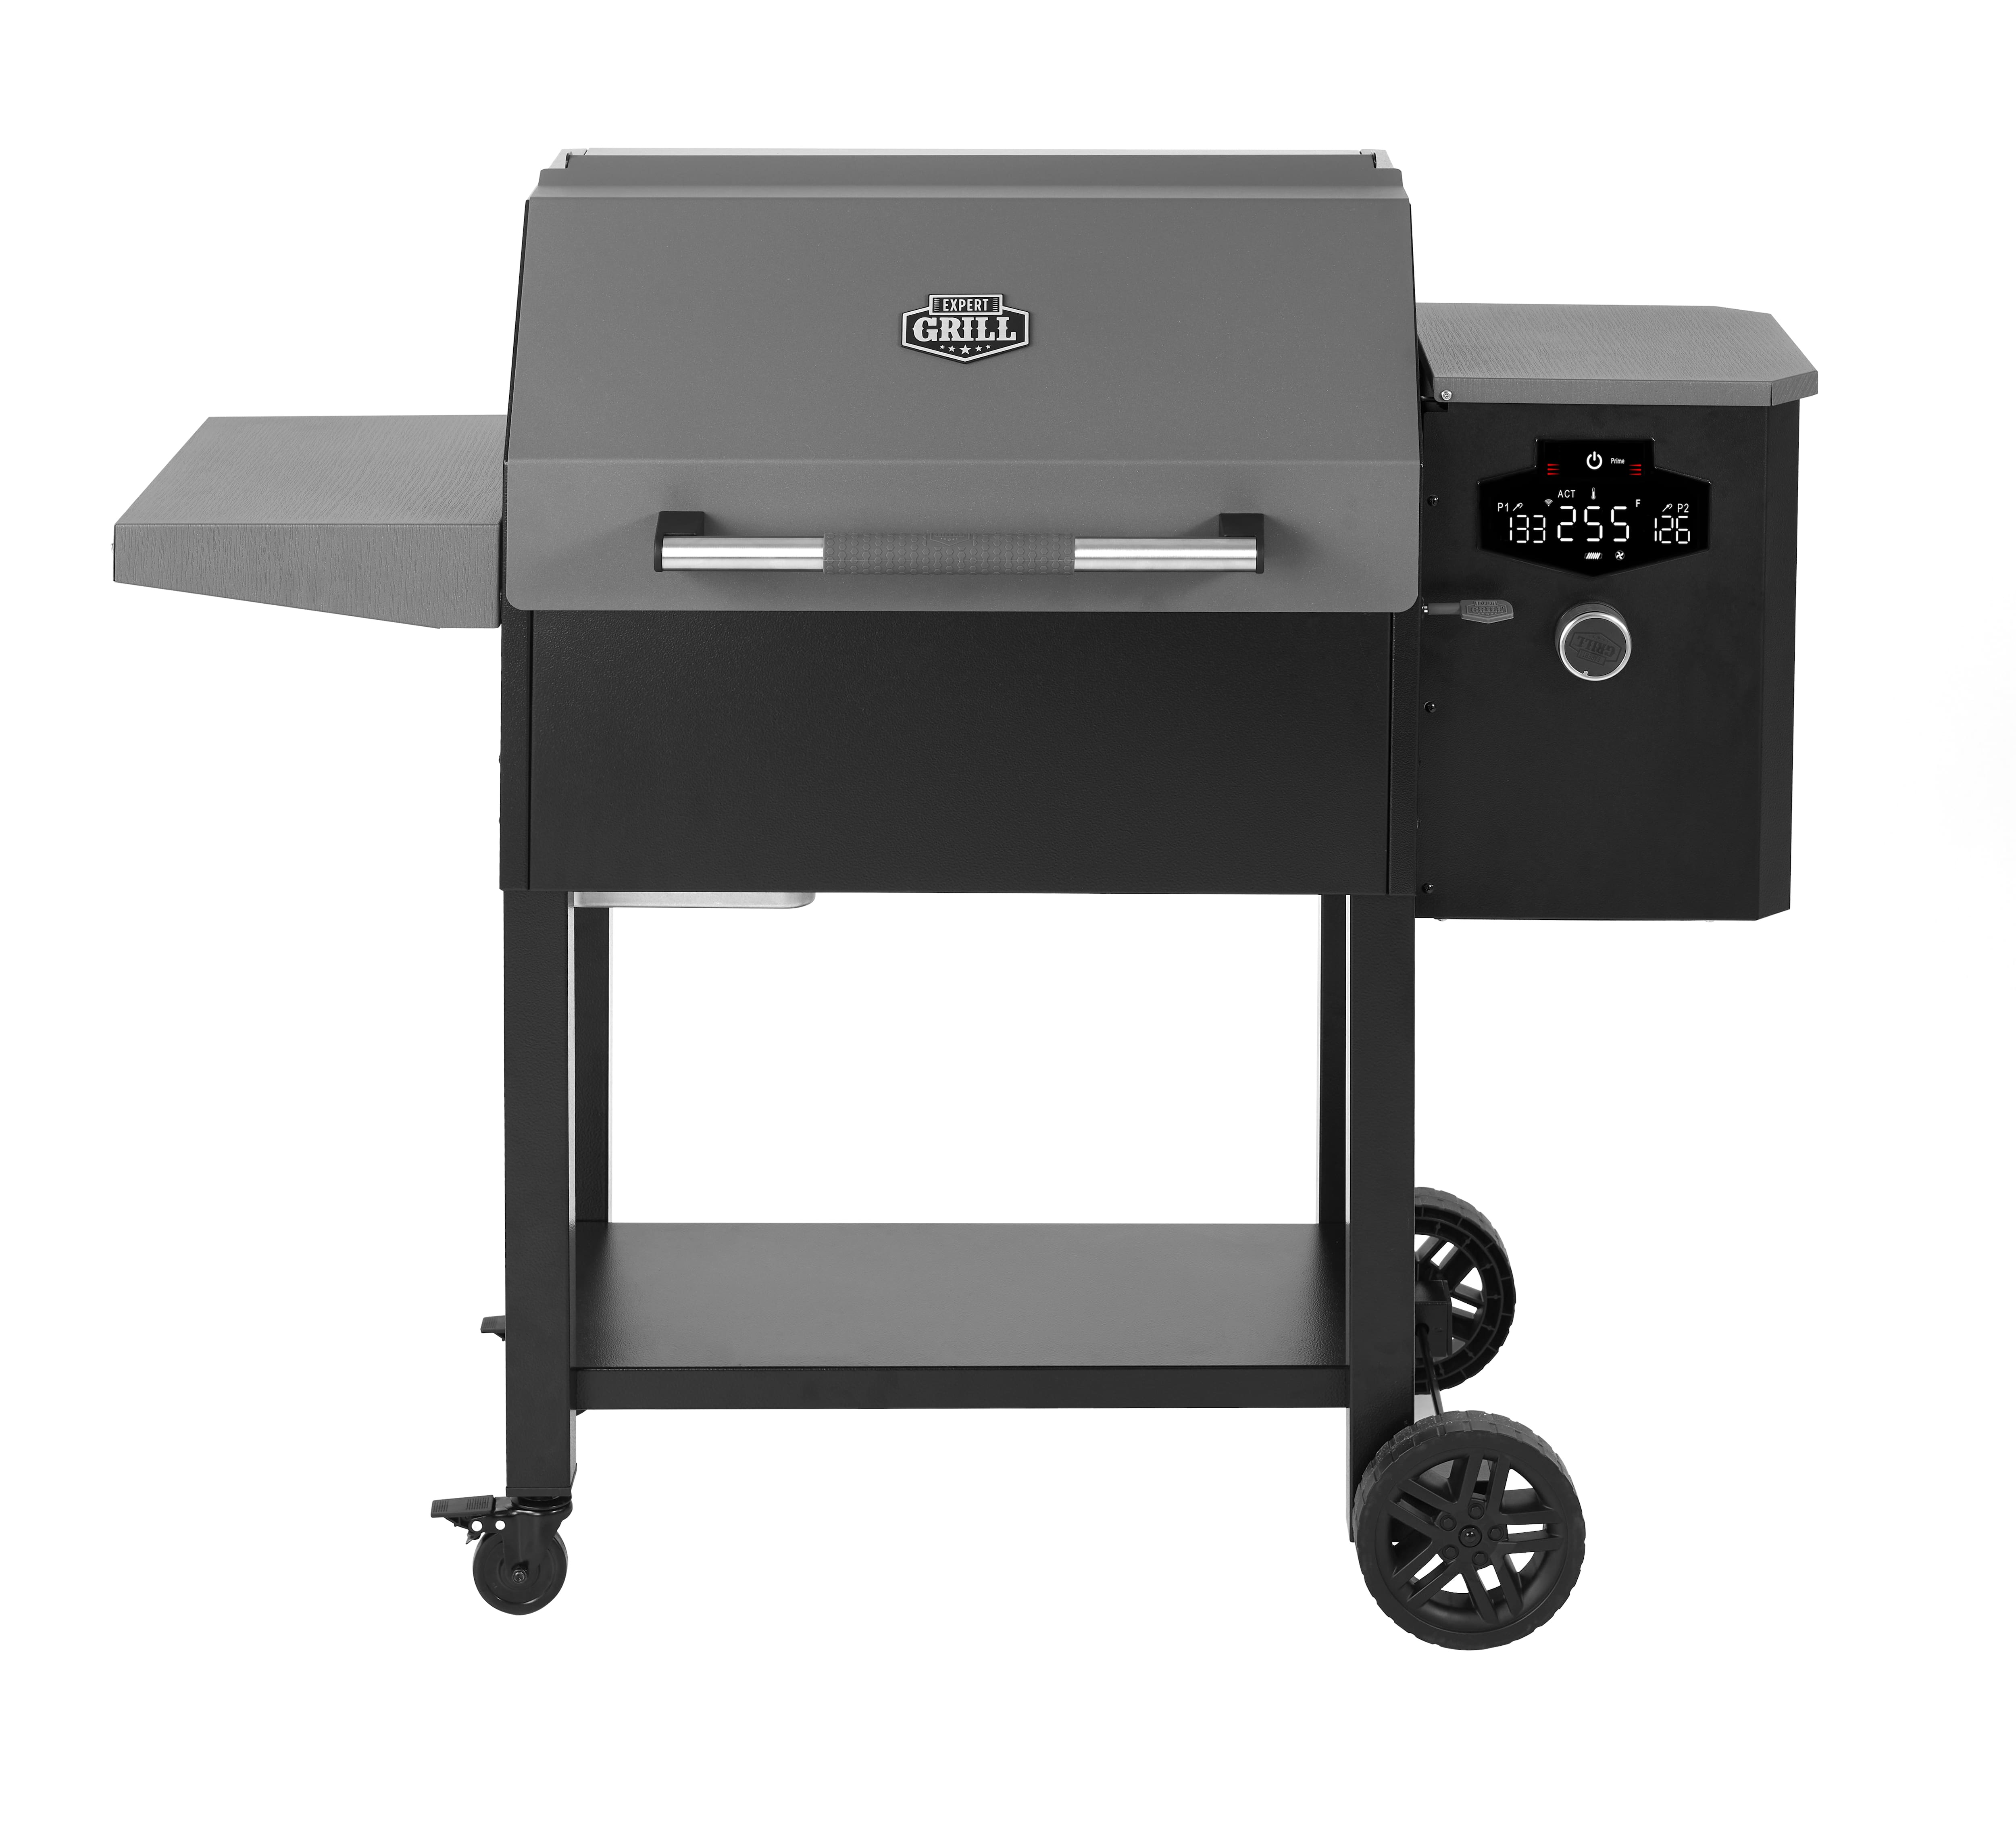 Expert Grill Commodore Pellet Grill and Smoker - Walmart In-store YMMV $100